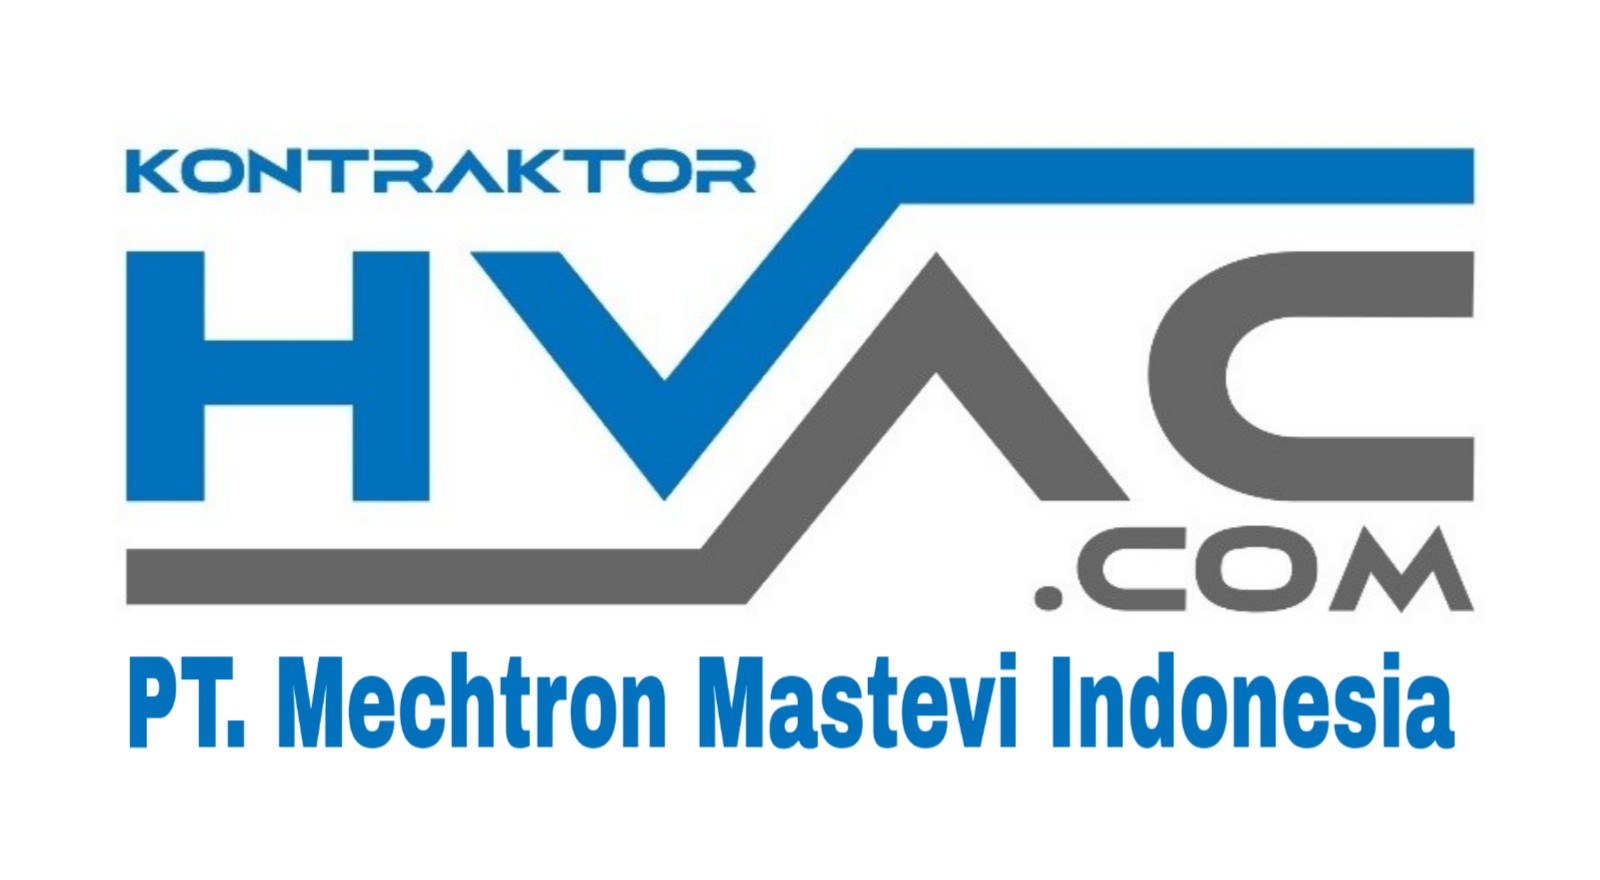 Mechtron Mastevi Indonesia